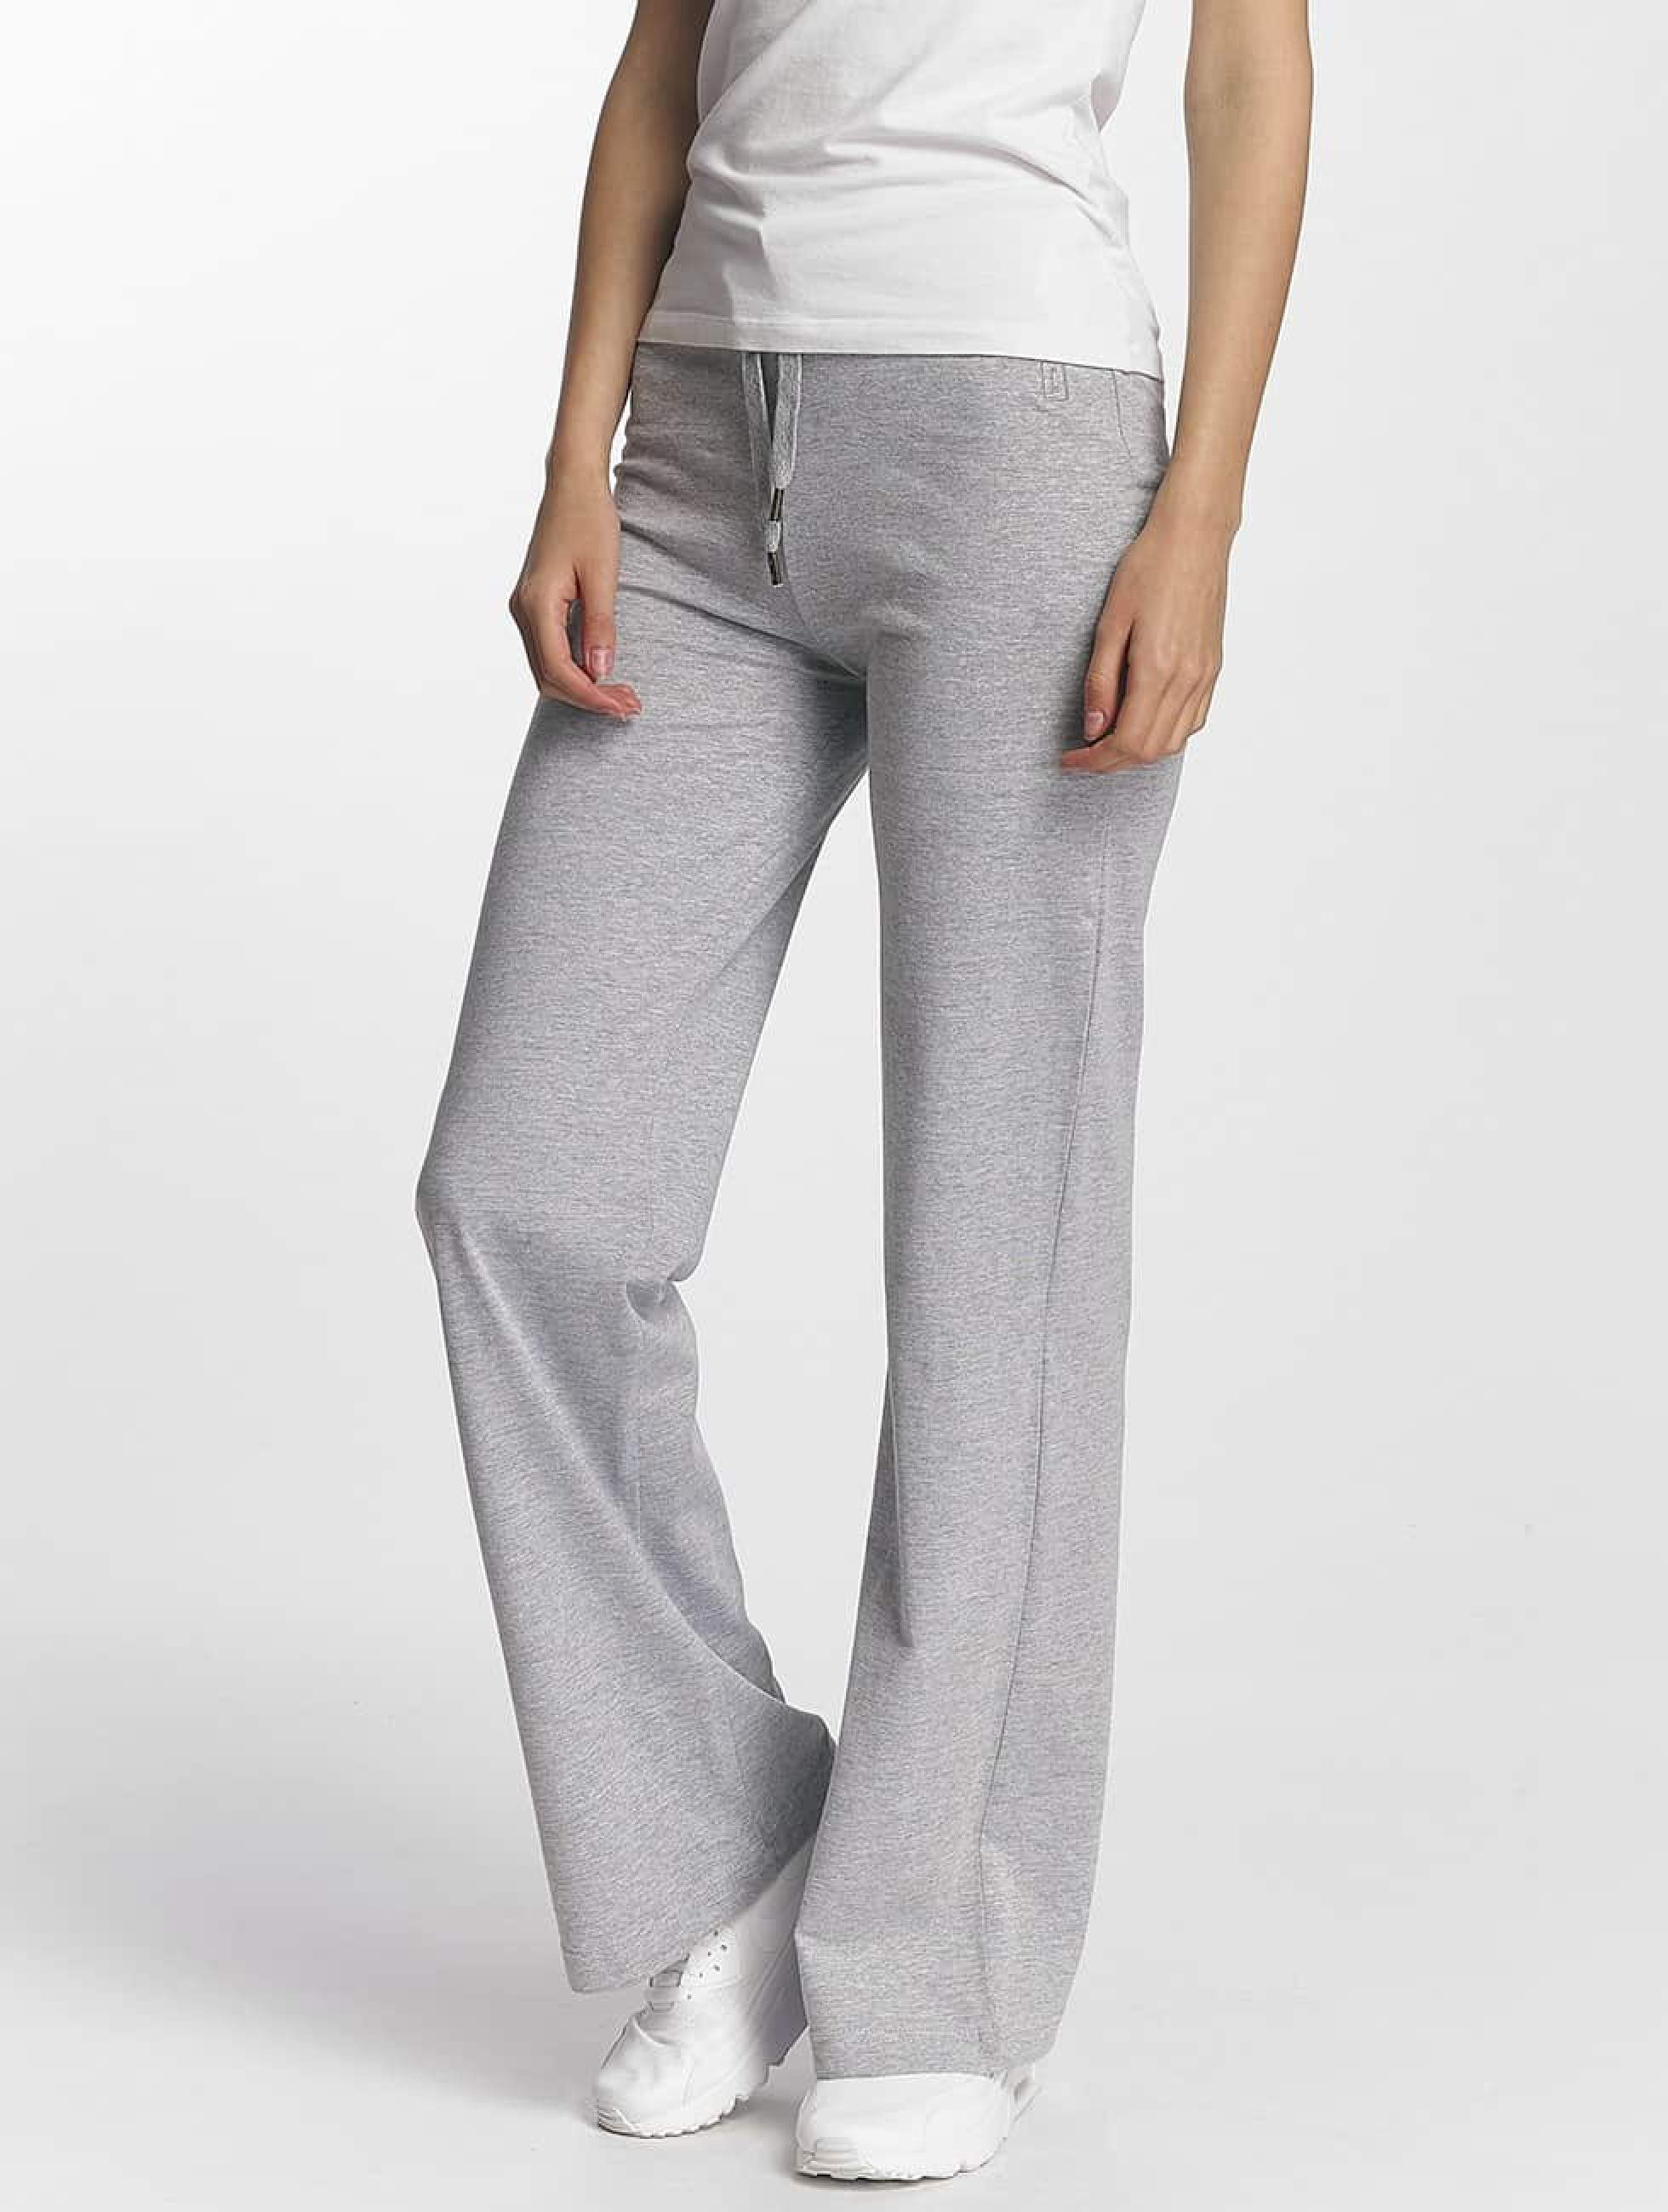 Cyprime / Sweat Pant Silicon in grey M